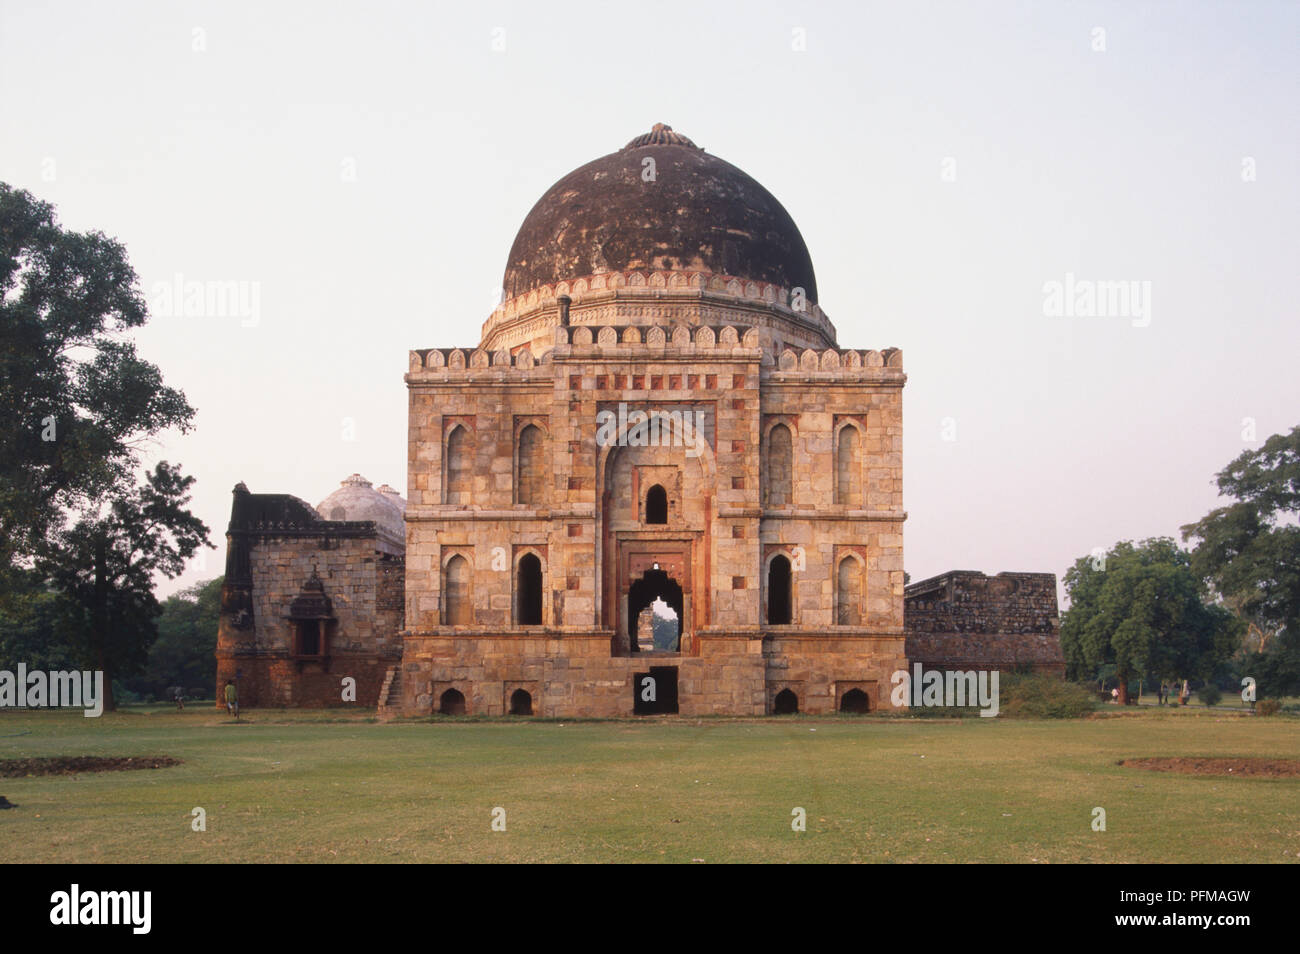 India, Delhi, the Bara Gumbad of a 15th-century Lodi tomb, large central dome. - Stock Image